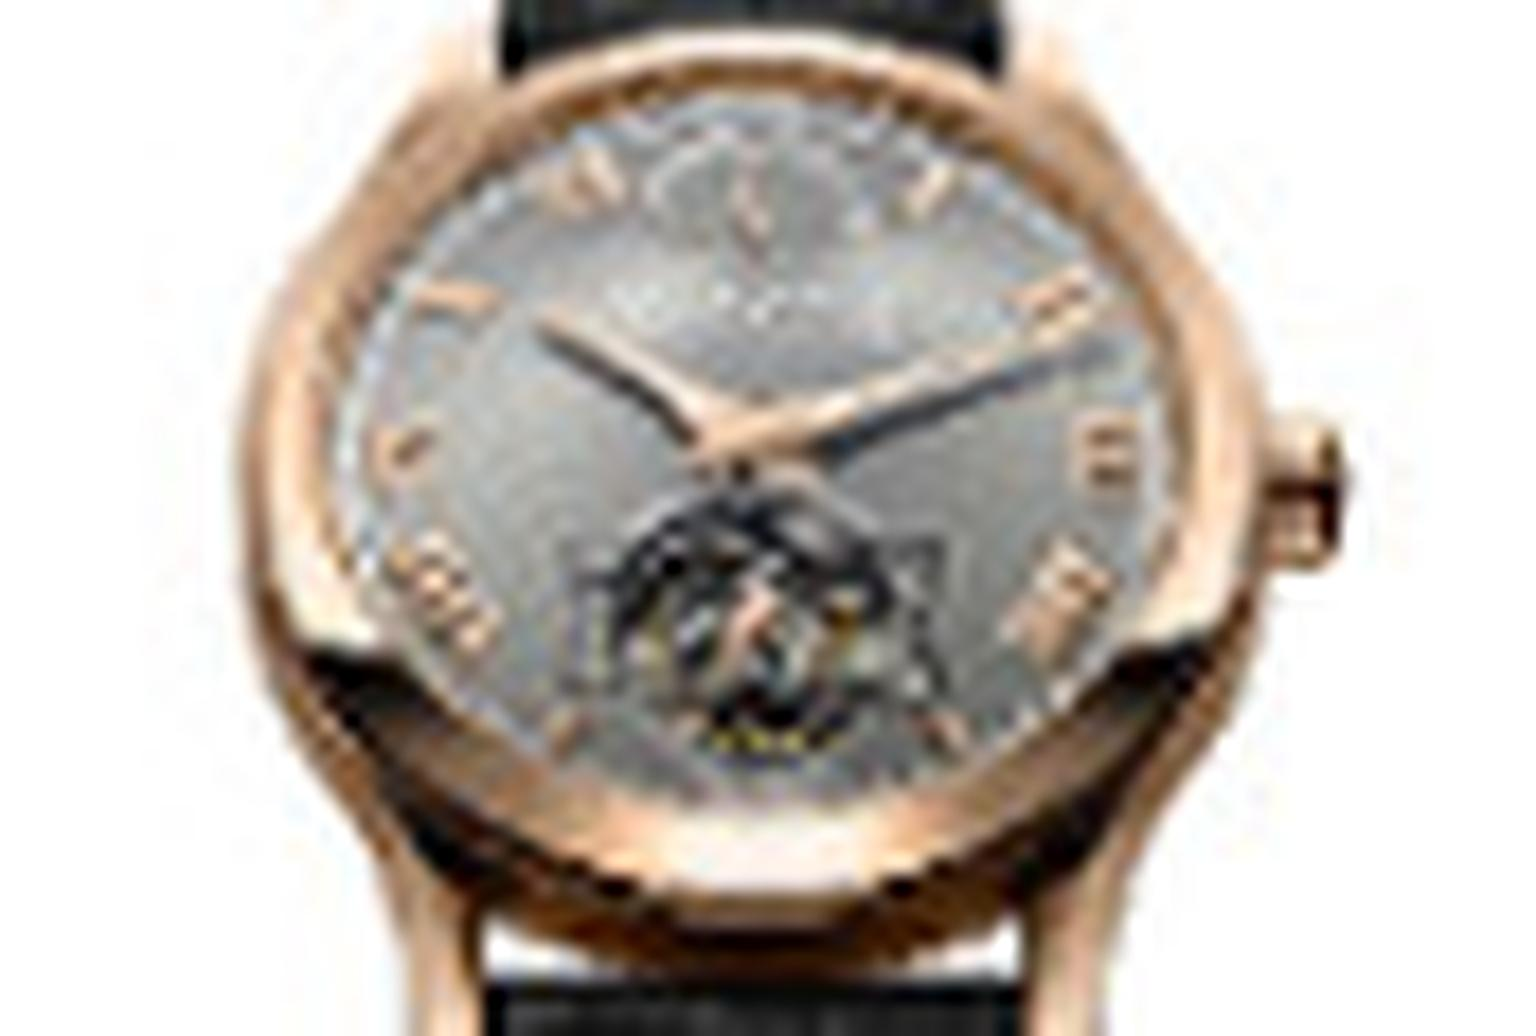 Chopard Fairtrade gold watch